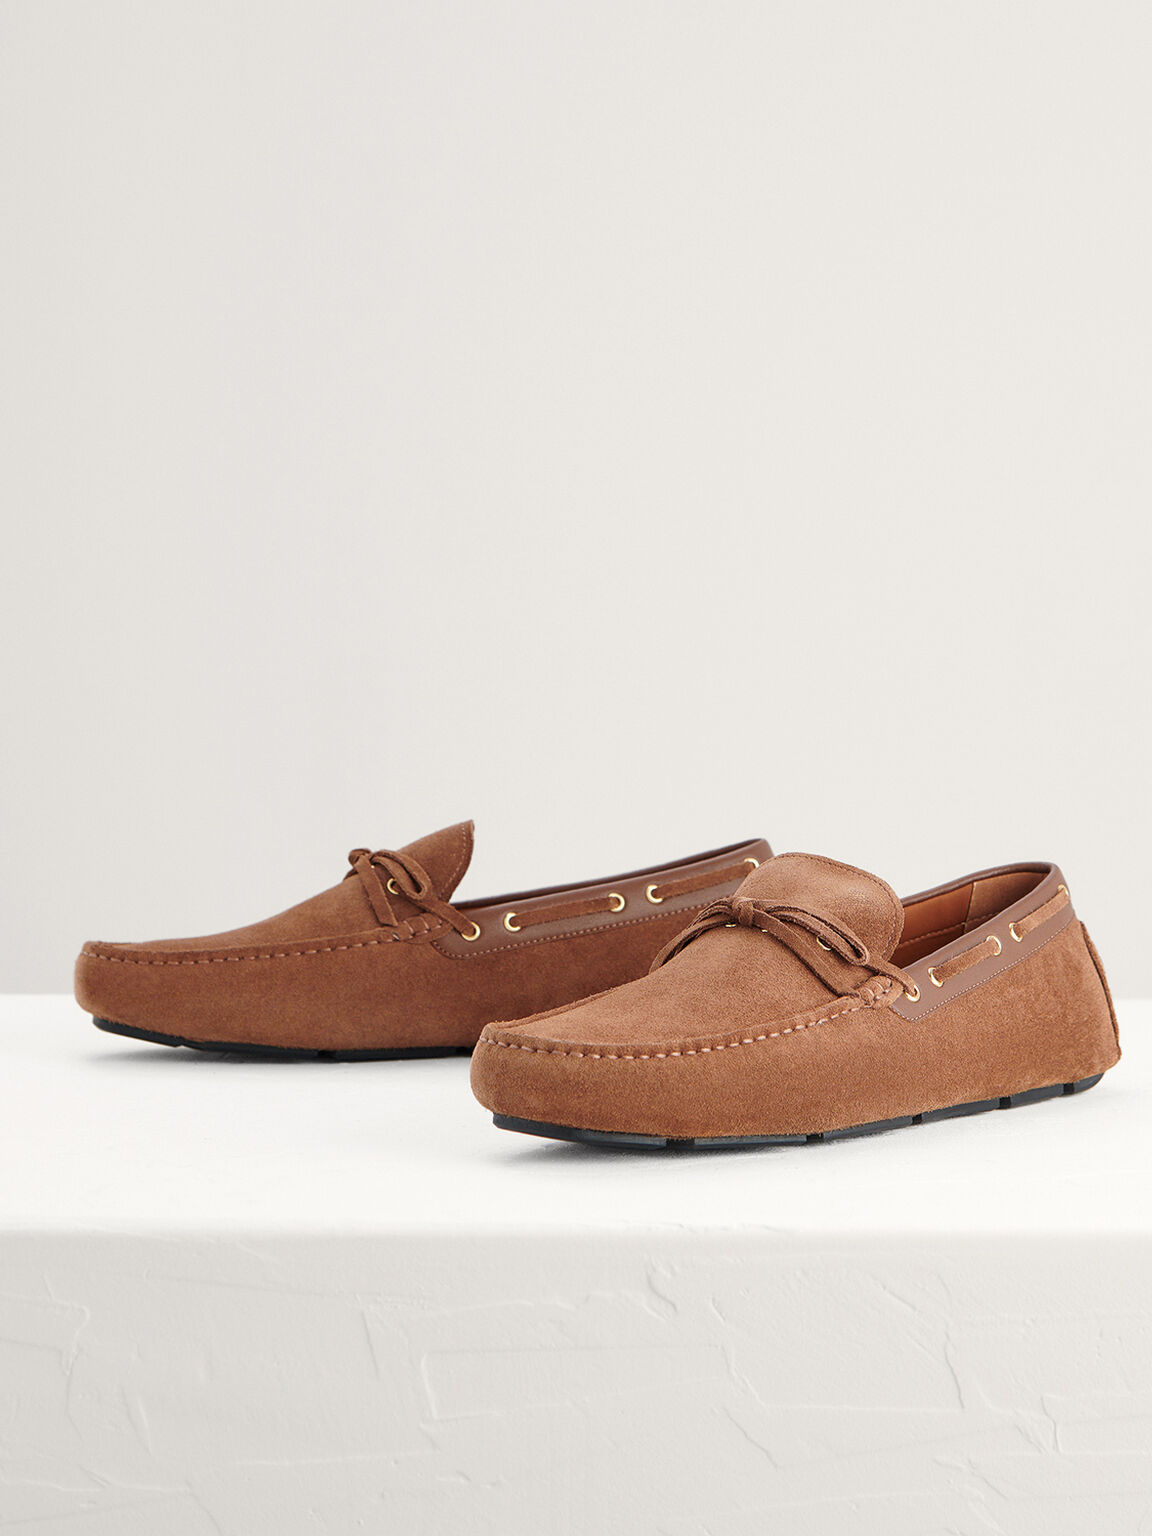 Bow-Detailed Suede Moccasins, Light Brown, hi-res